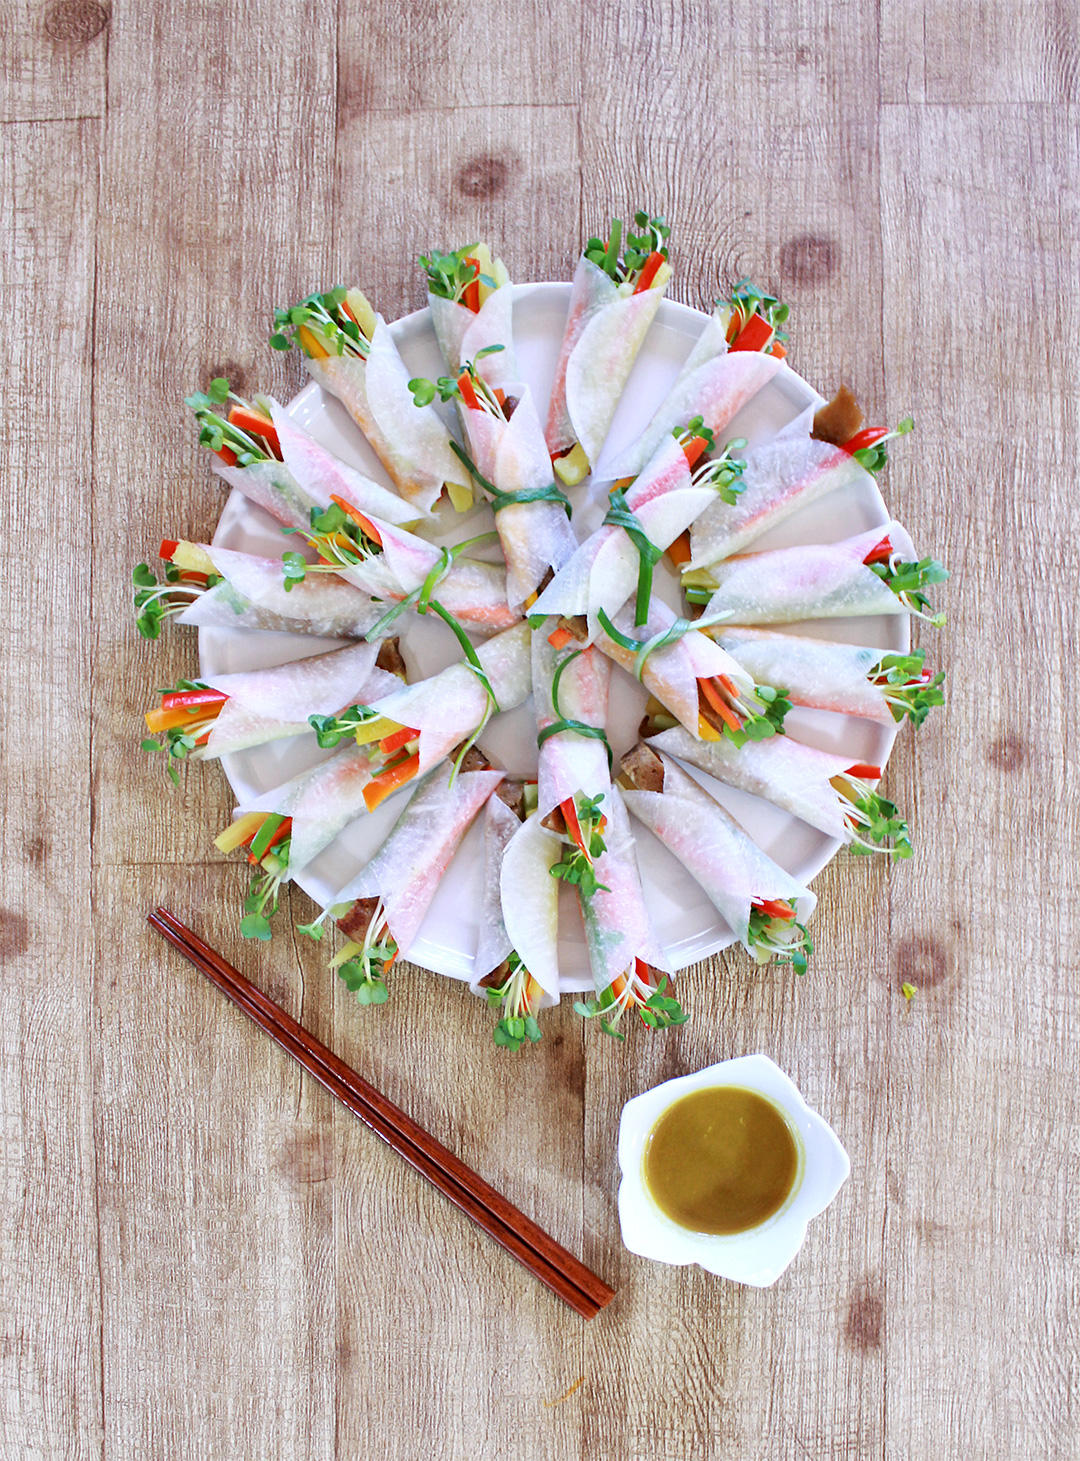 A vegetarian take on the Korean Ssam Mu (Radish Wrap) dish! Dip it into the spicy mustard sauce for an extra kick!